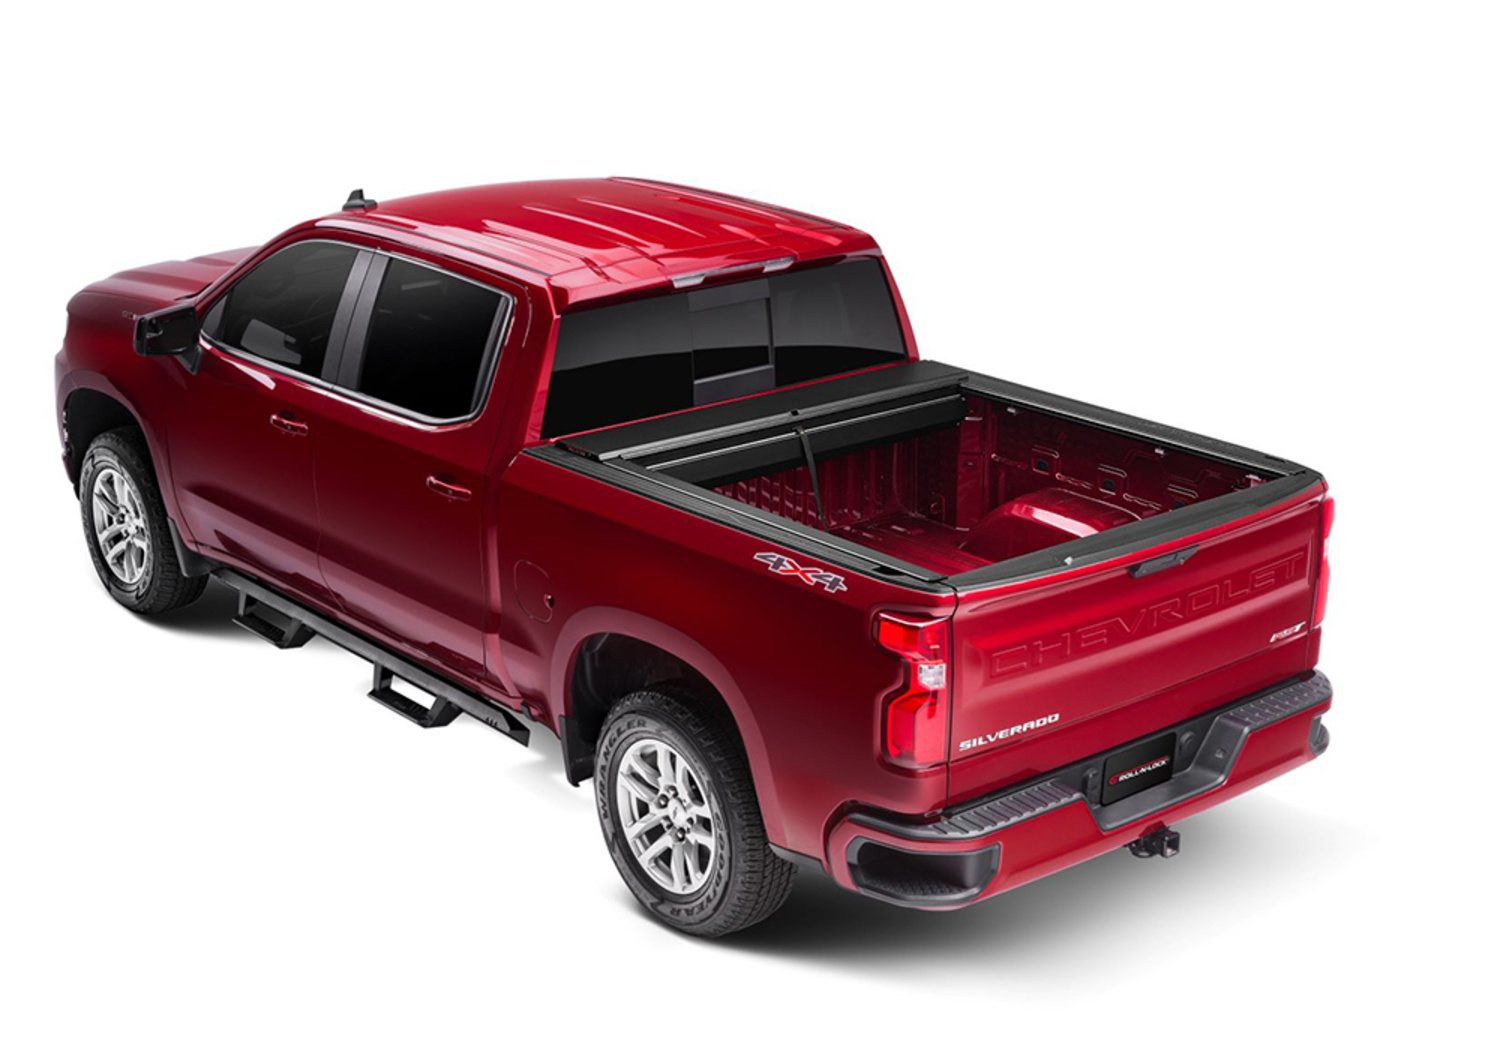 Roll-N-Lockr A-Series Truck Bed Cover, Will Not Fit Models w/Carbon Pro Bed